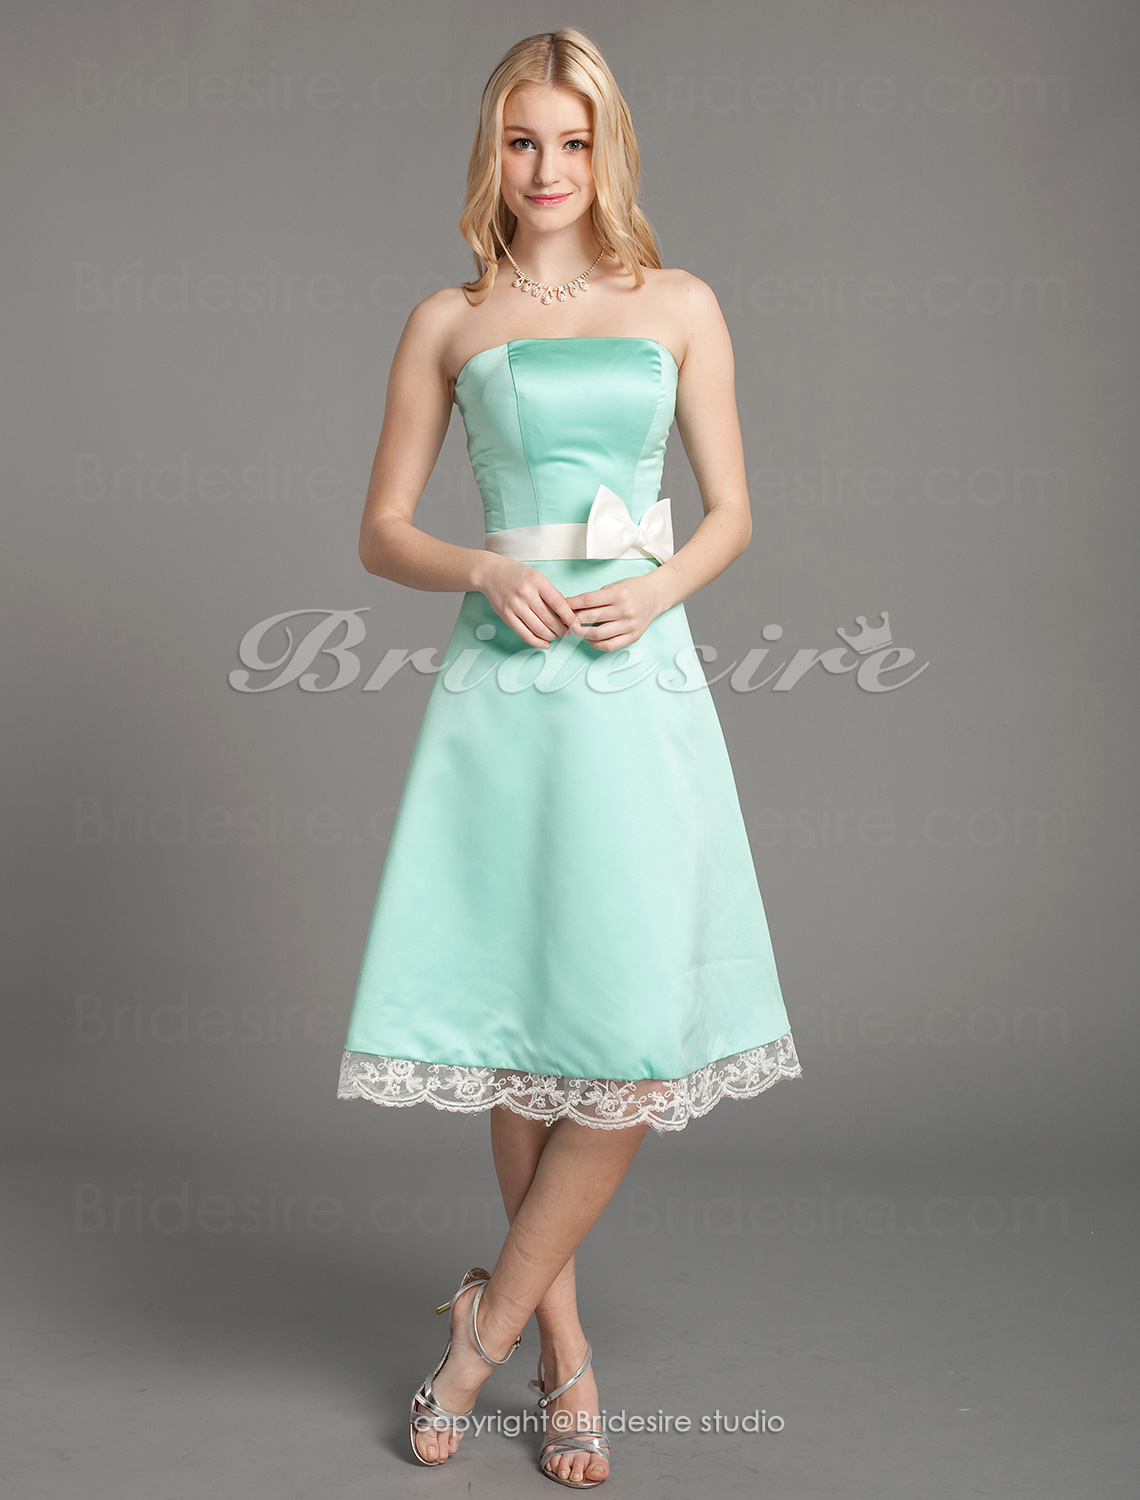 A-line Satin Lace Knee-length Strapless Bridesmaid Dress